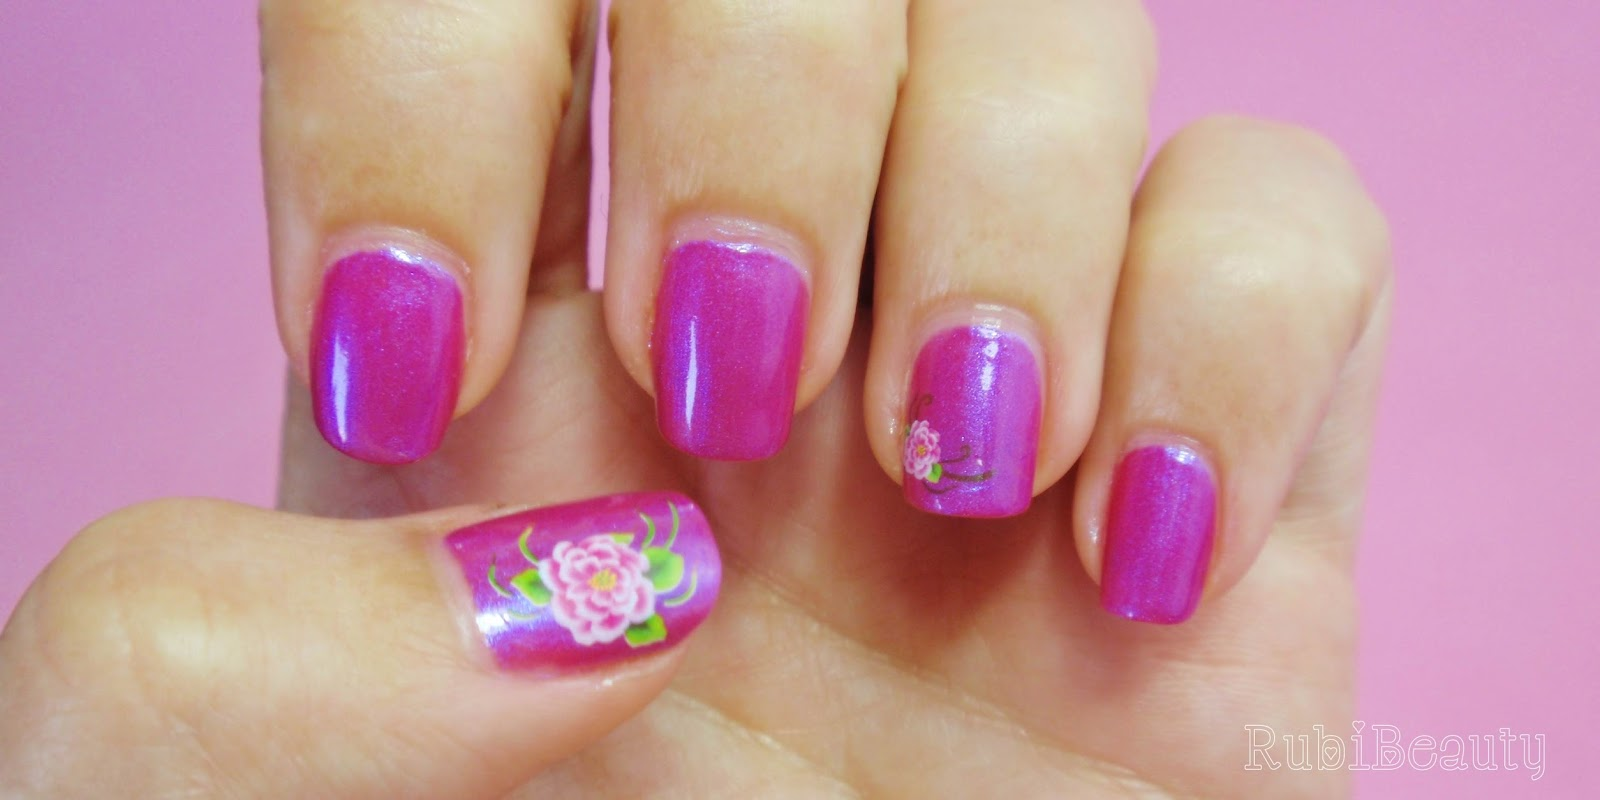 rubibeauty nail art water decals calcomanias sencillo flor